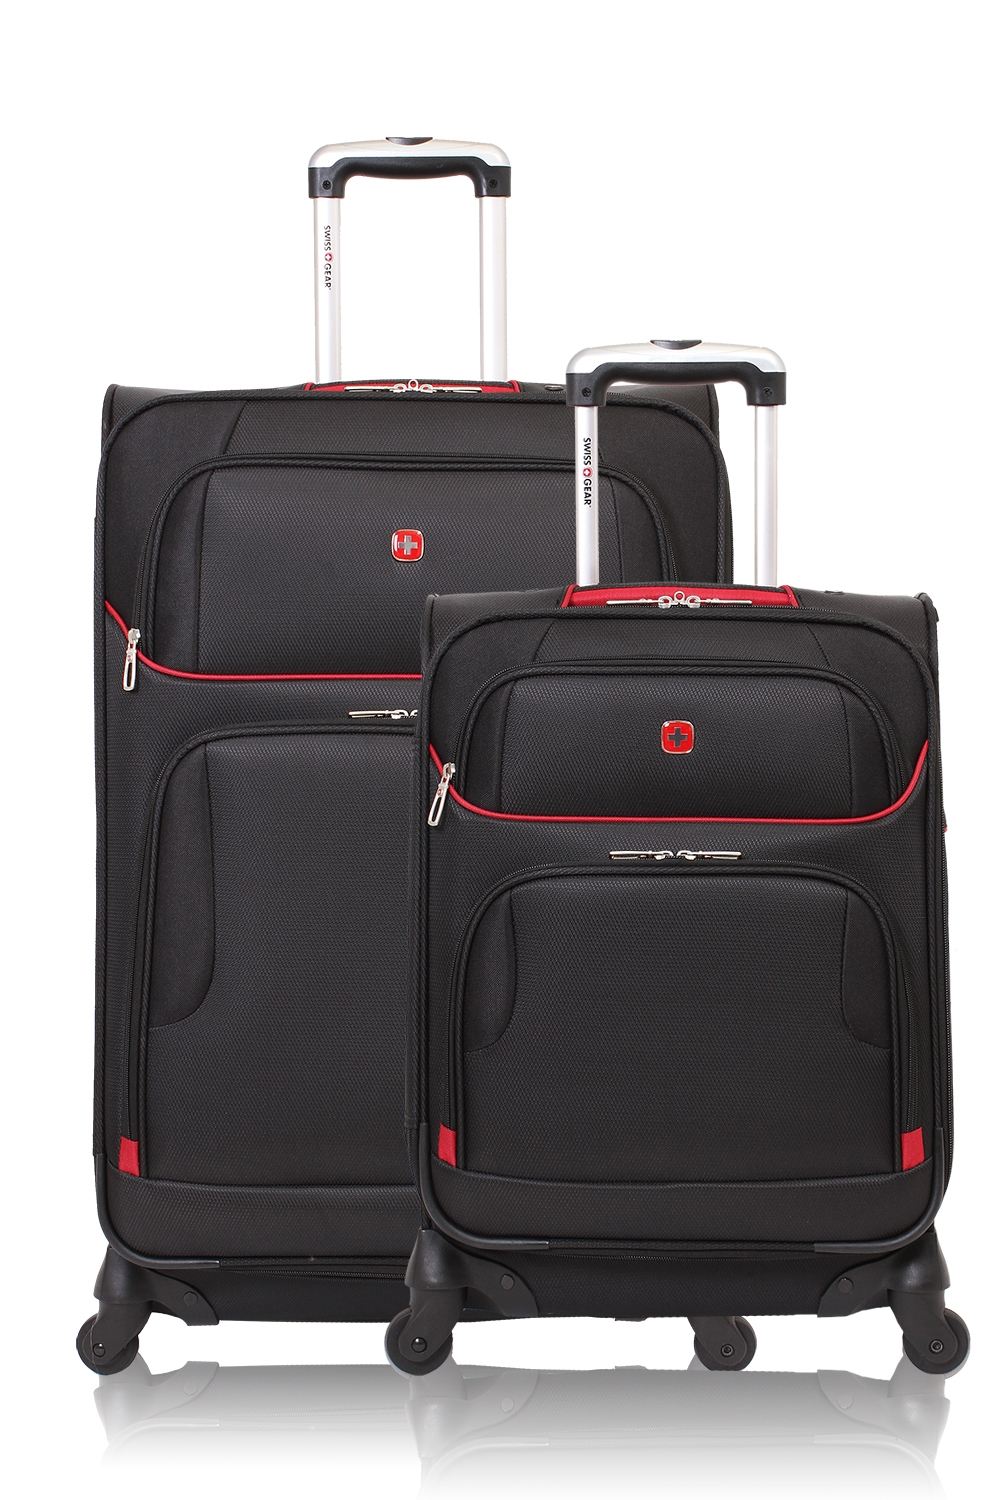 SWISSGEAR 7317 Expandable Spinner Luggage 2pc Set - Black/Red